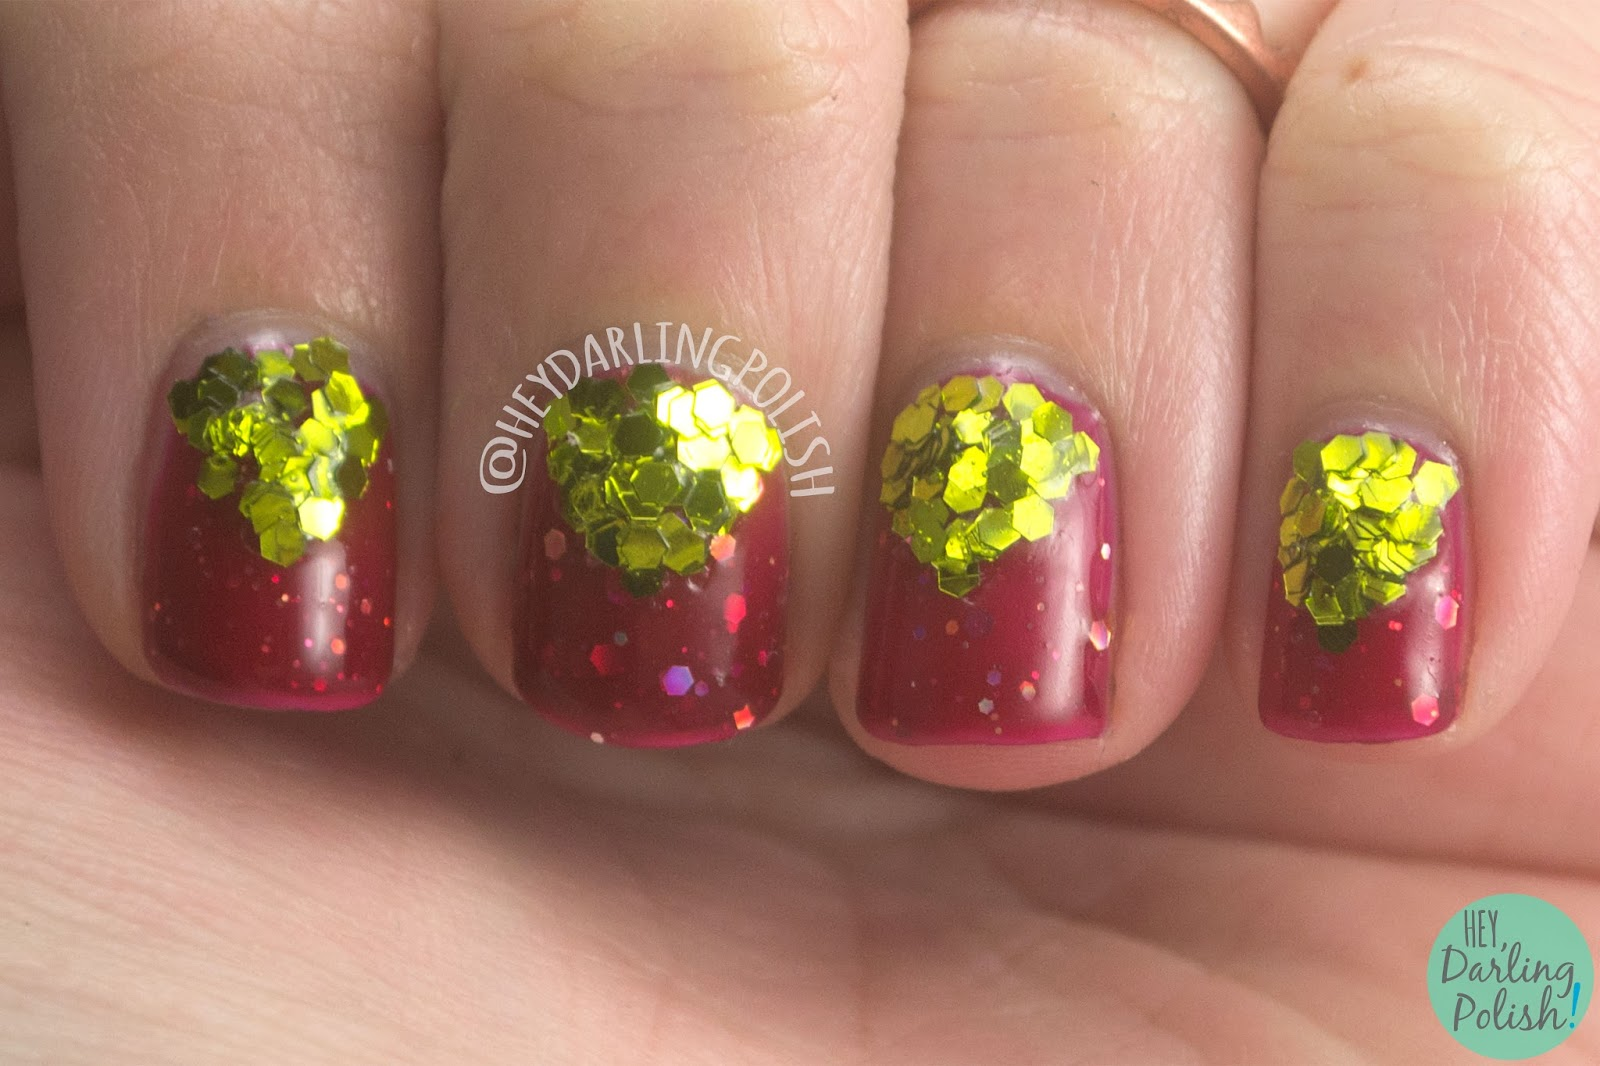 nails, nail art, nail polish, red, gold, glitter, indie polish, indie nail polish, shirley ann nail lacquer, hey darling polish, 52 week challenge